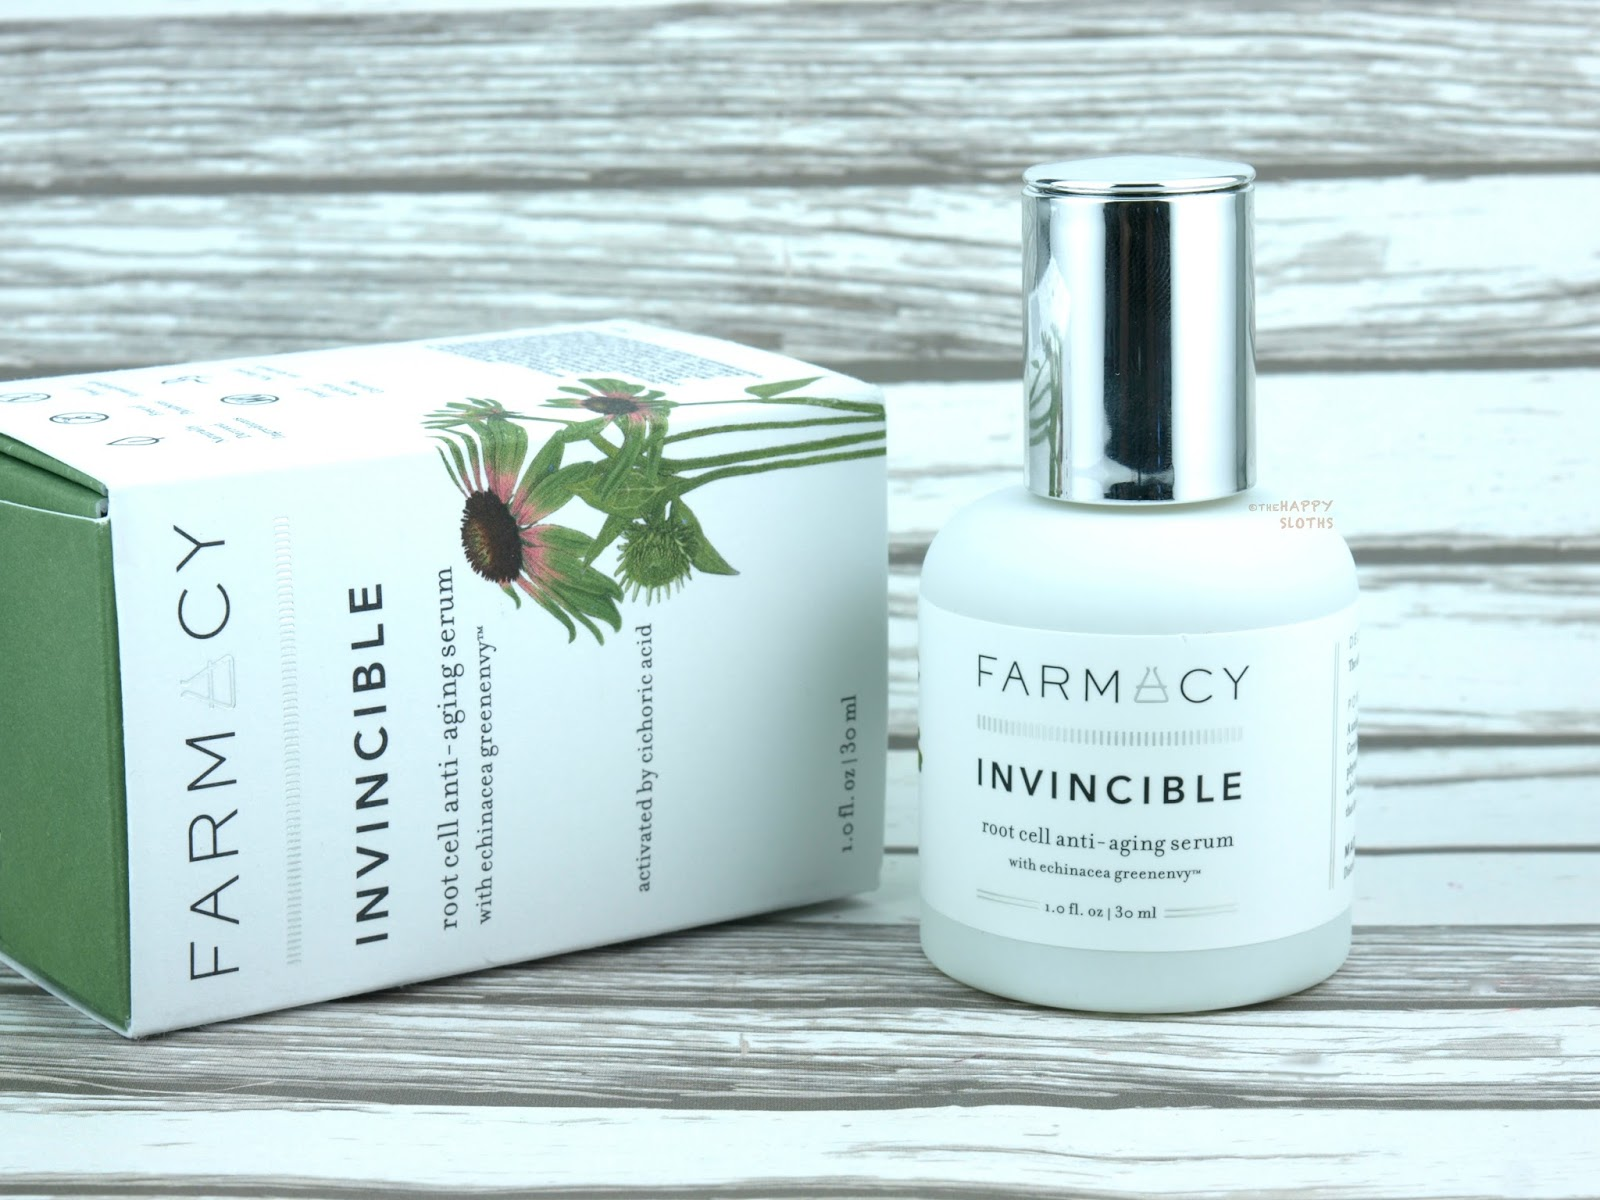 Farmacy Invincible Root Cell Anti-Aging Serum: Review